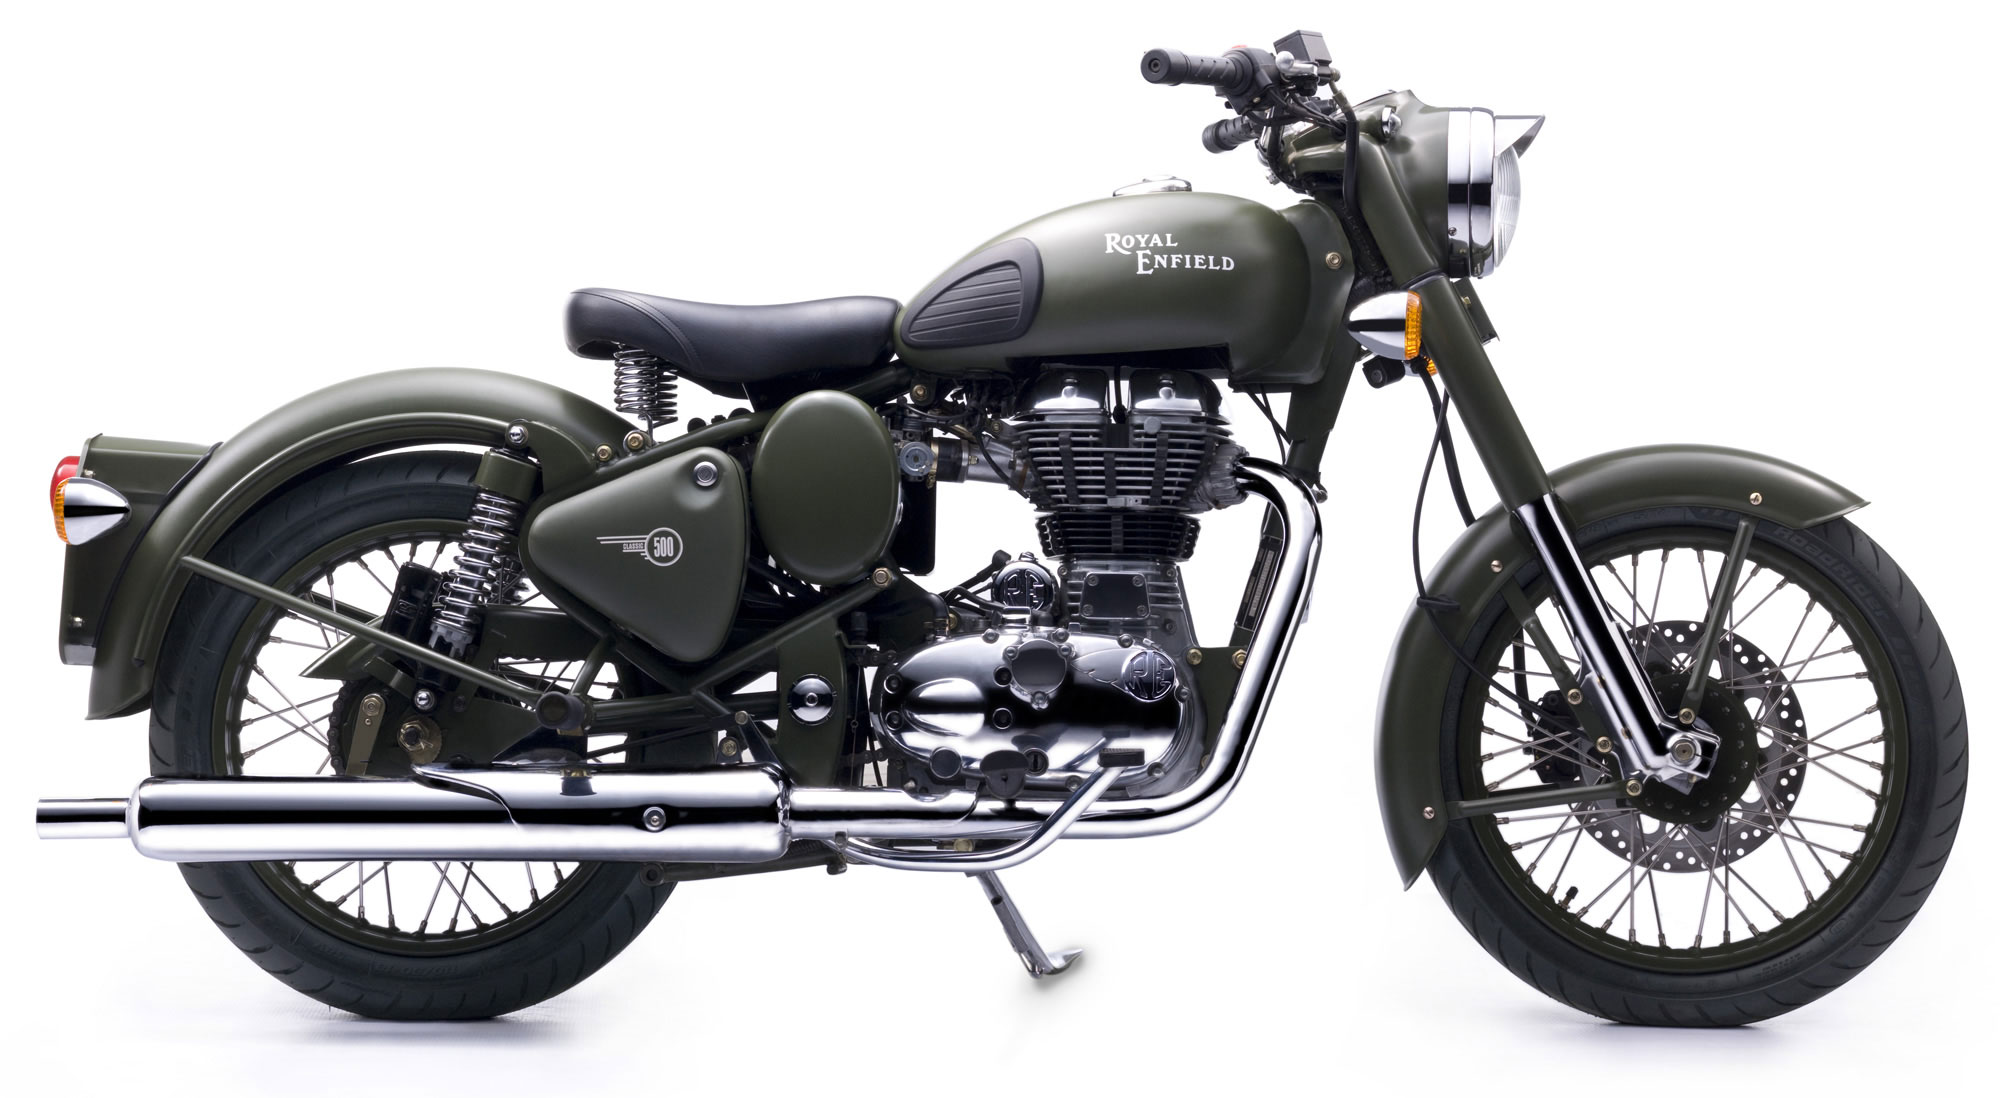 Royal Enfield Bullet 350 Army 2000 images #122943